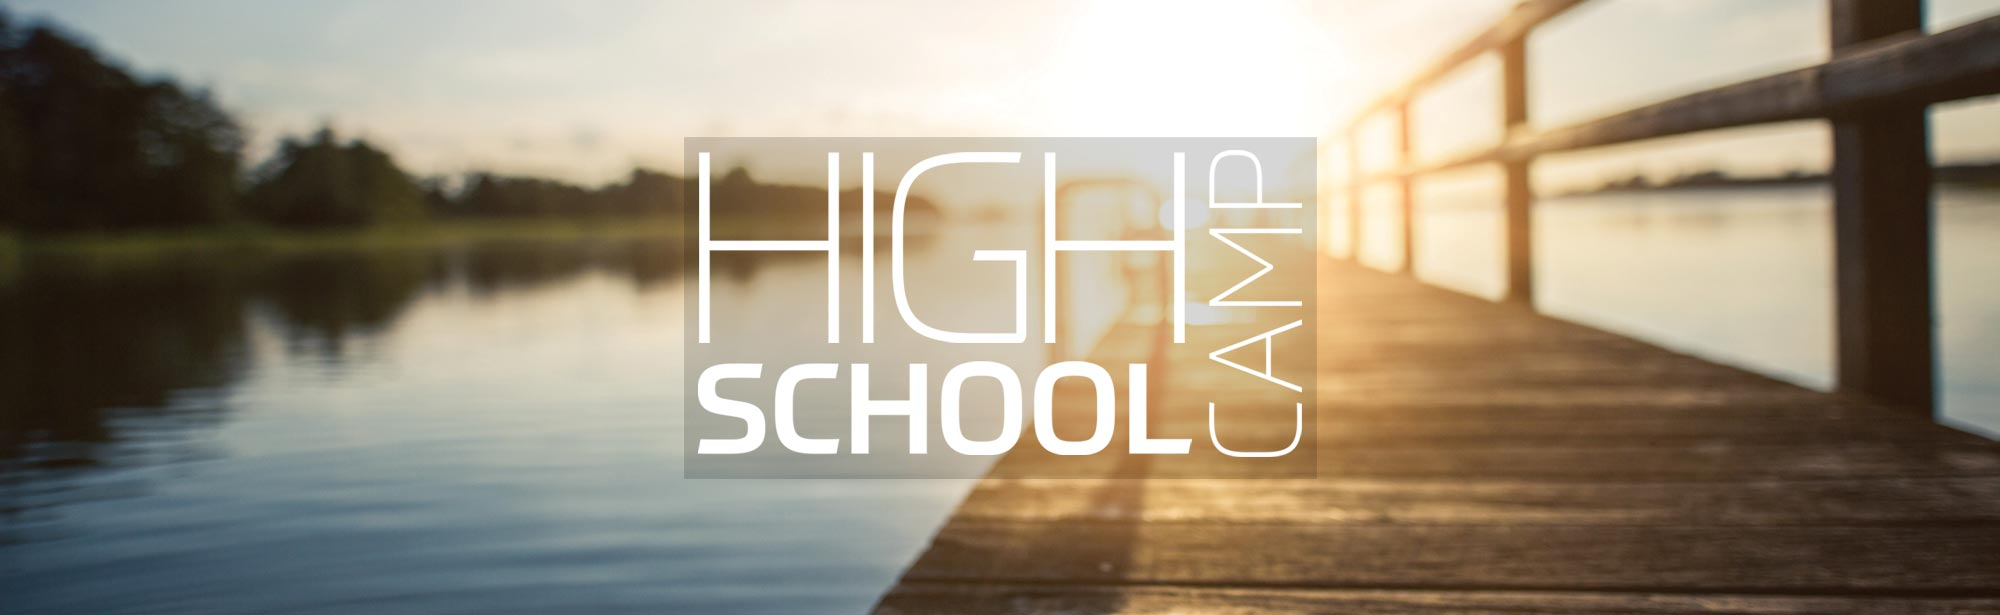 High School Camp - Relevant Students - Grace Community Church